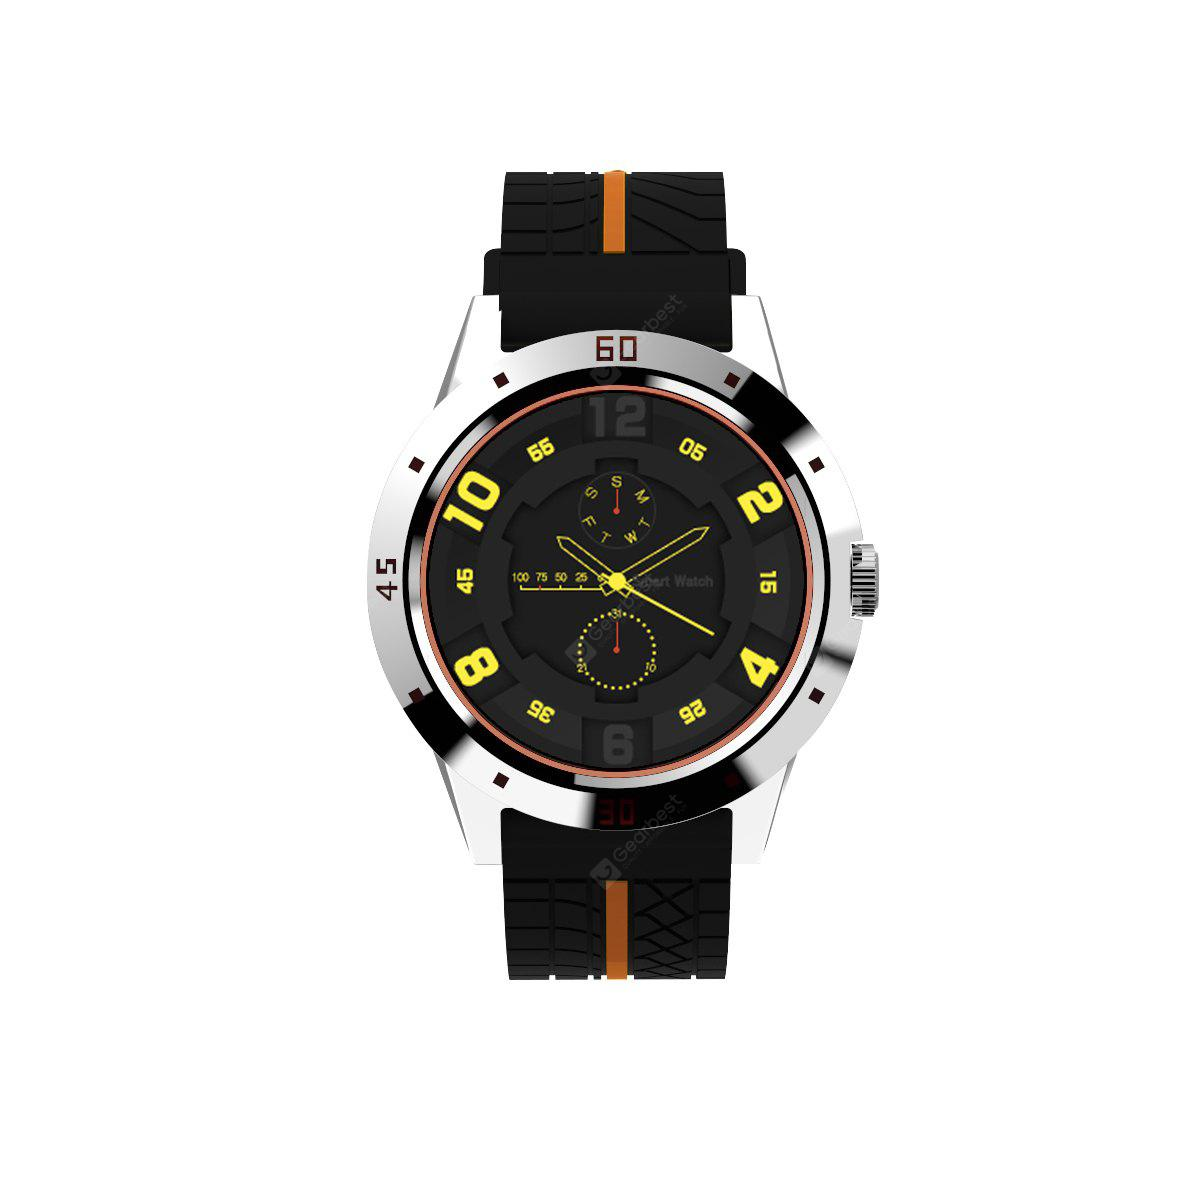 Diggro DI02 Bluetooth Siri Smart watch MTK2502C 128MB+64MB Heart Rate Monitor Pedometer Sleep Monitor Sedentary Remind  Notifications Pushing for Android & IOS